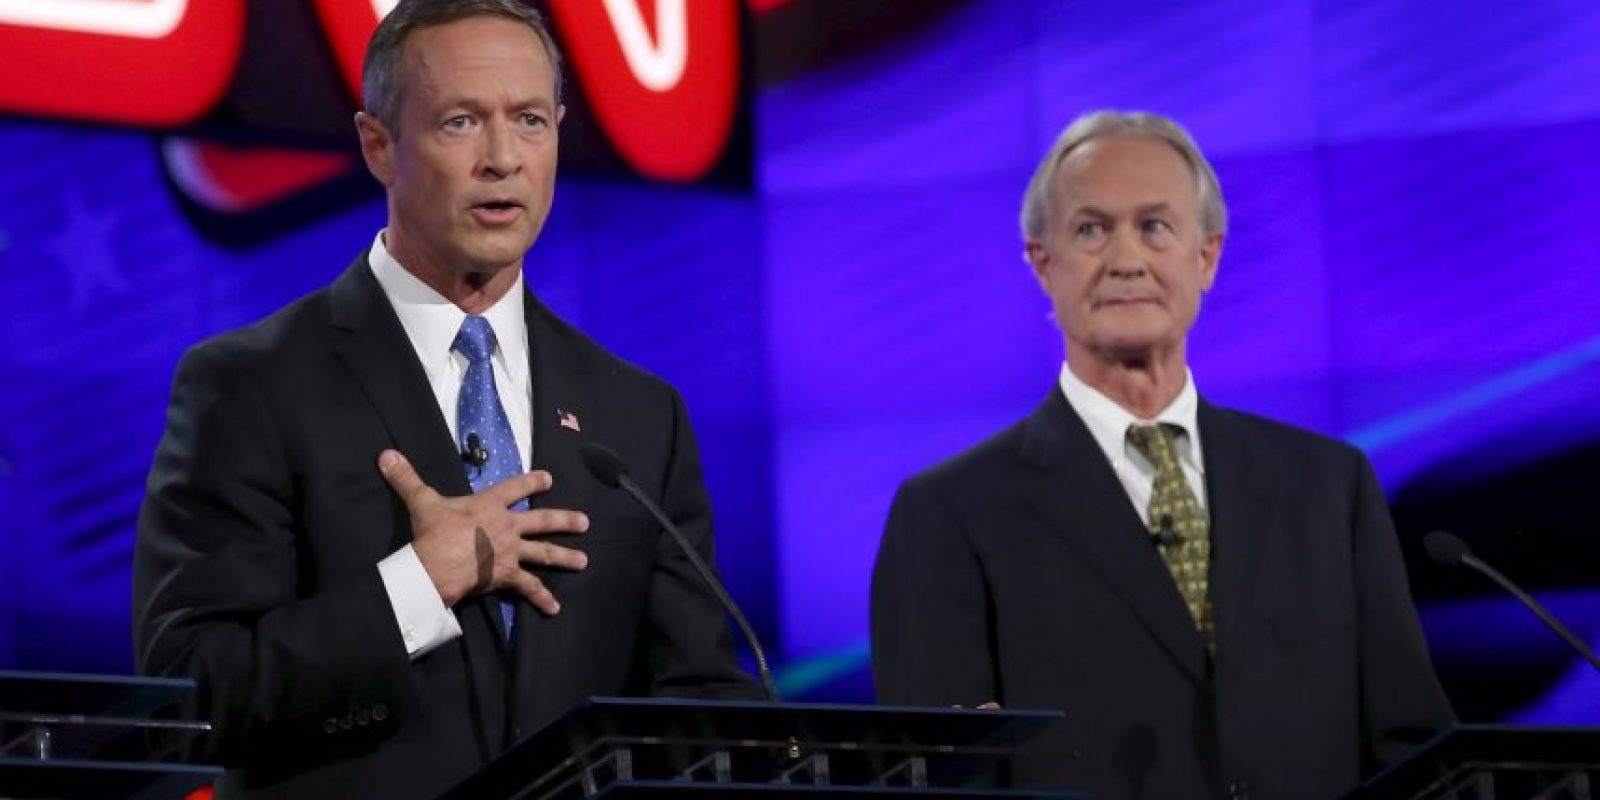 Martin O'Malley (izq) y Lincoln Chafee (der). Foto: Getty Images